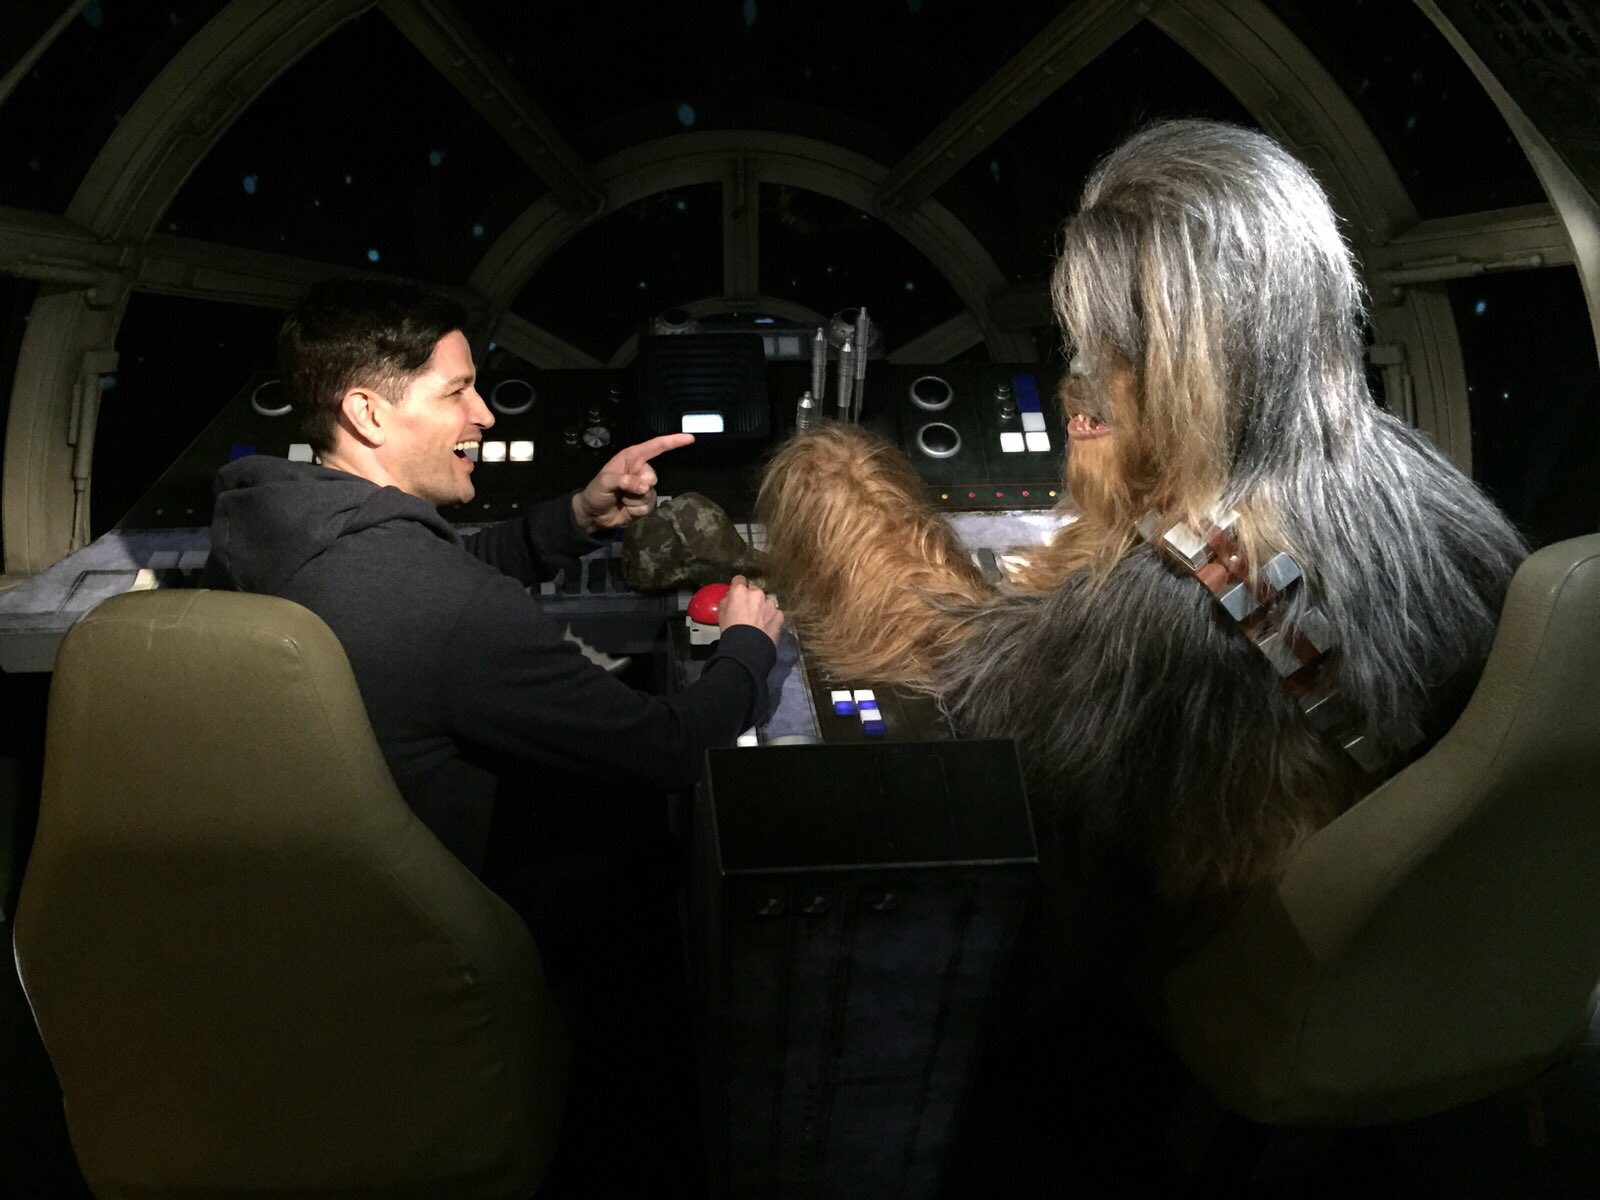 Me and Chewy having the Bants on the way to the premiere. He's on top form tonight @StarWarsUK https://t.co/rAHYPbnxJA